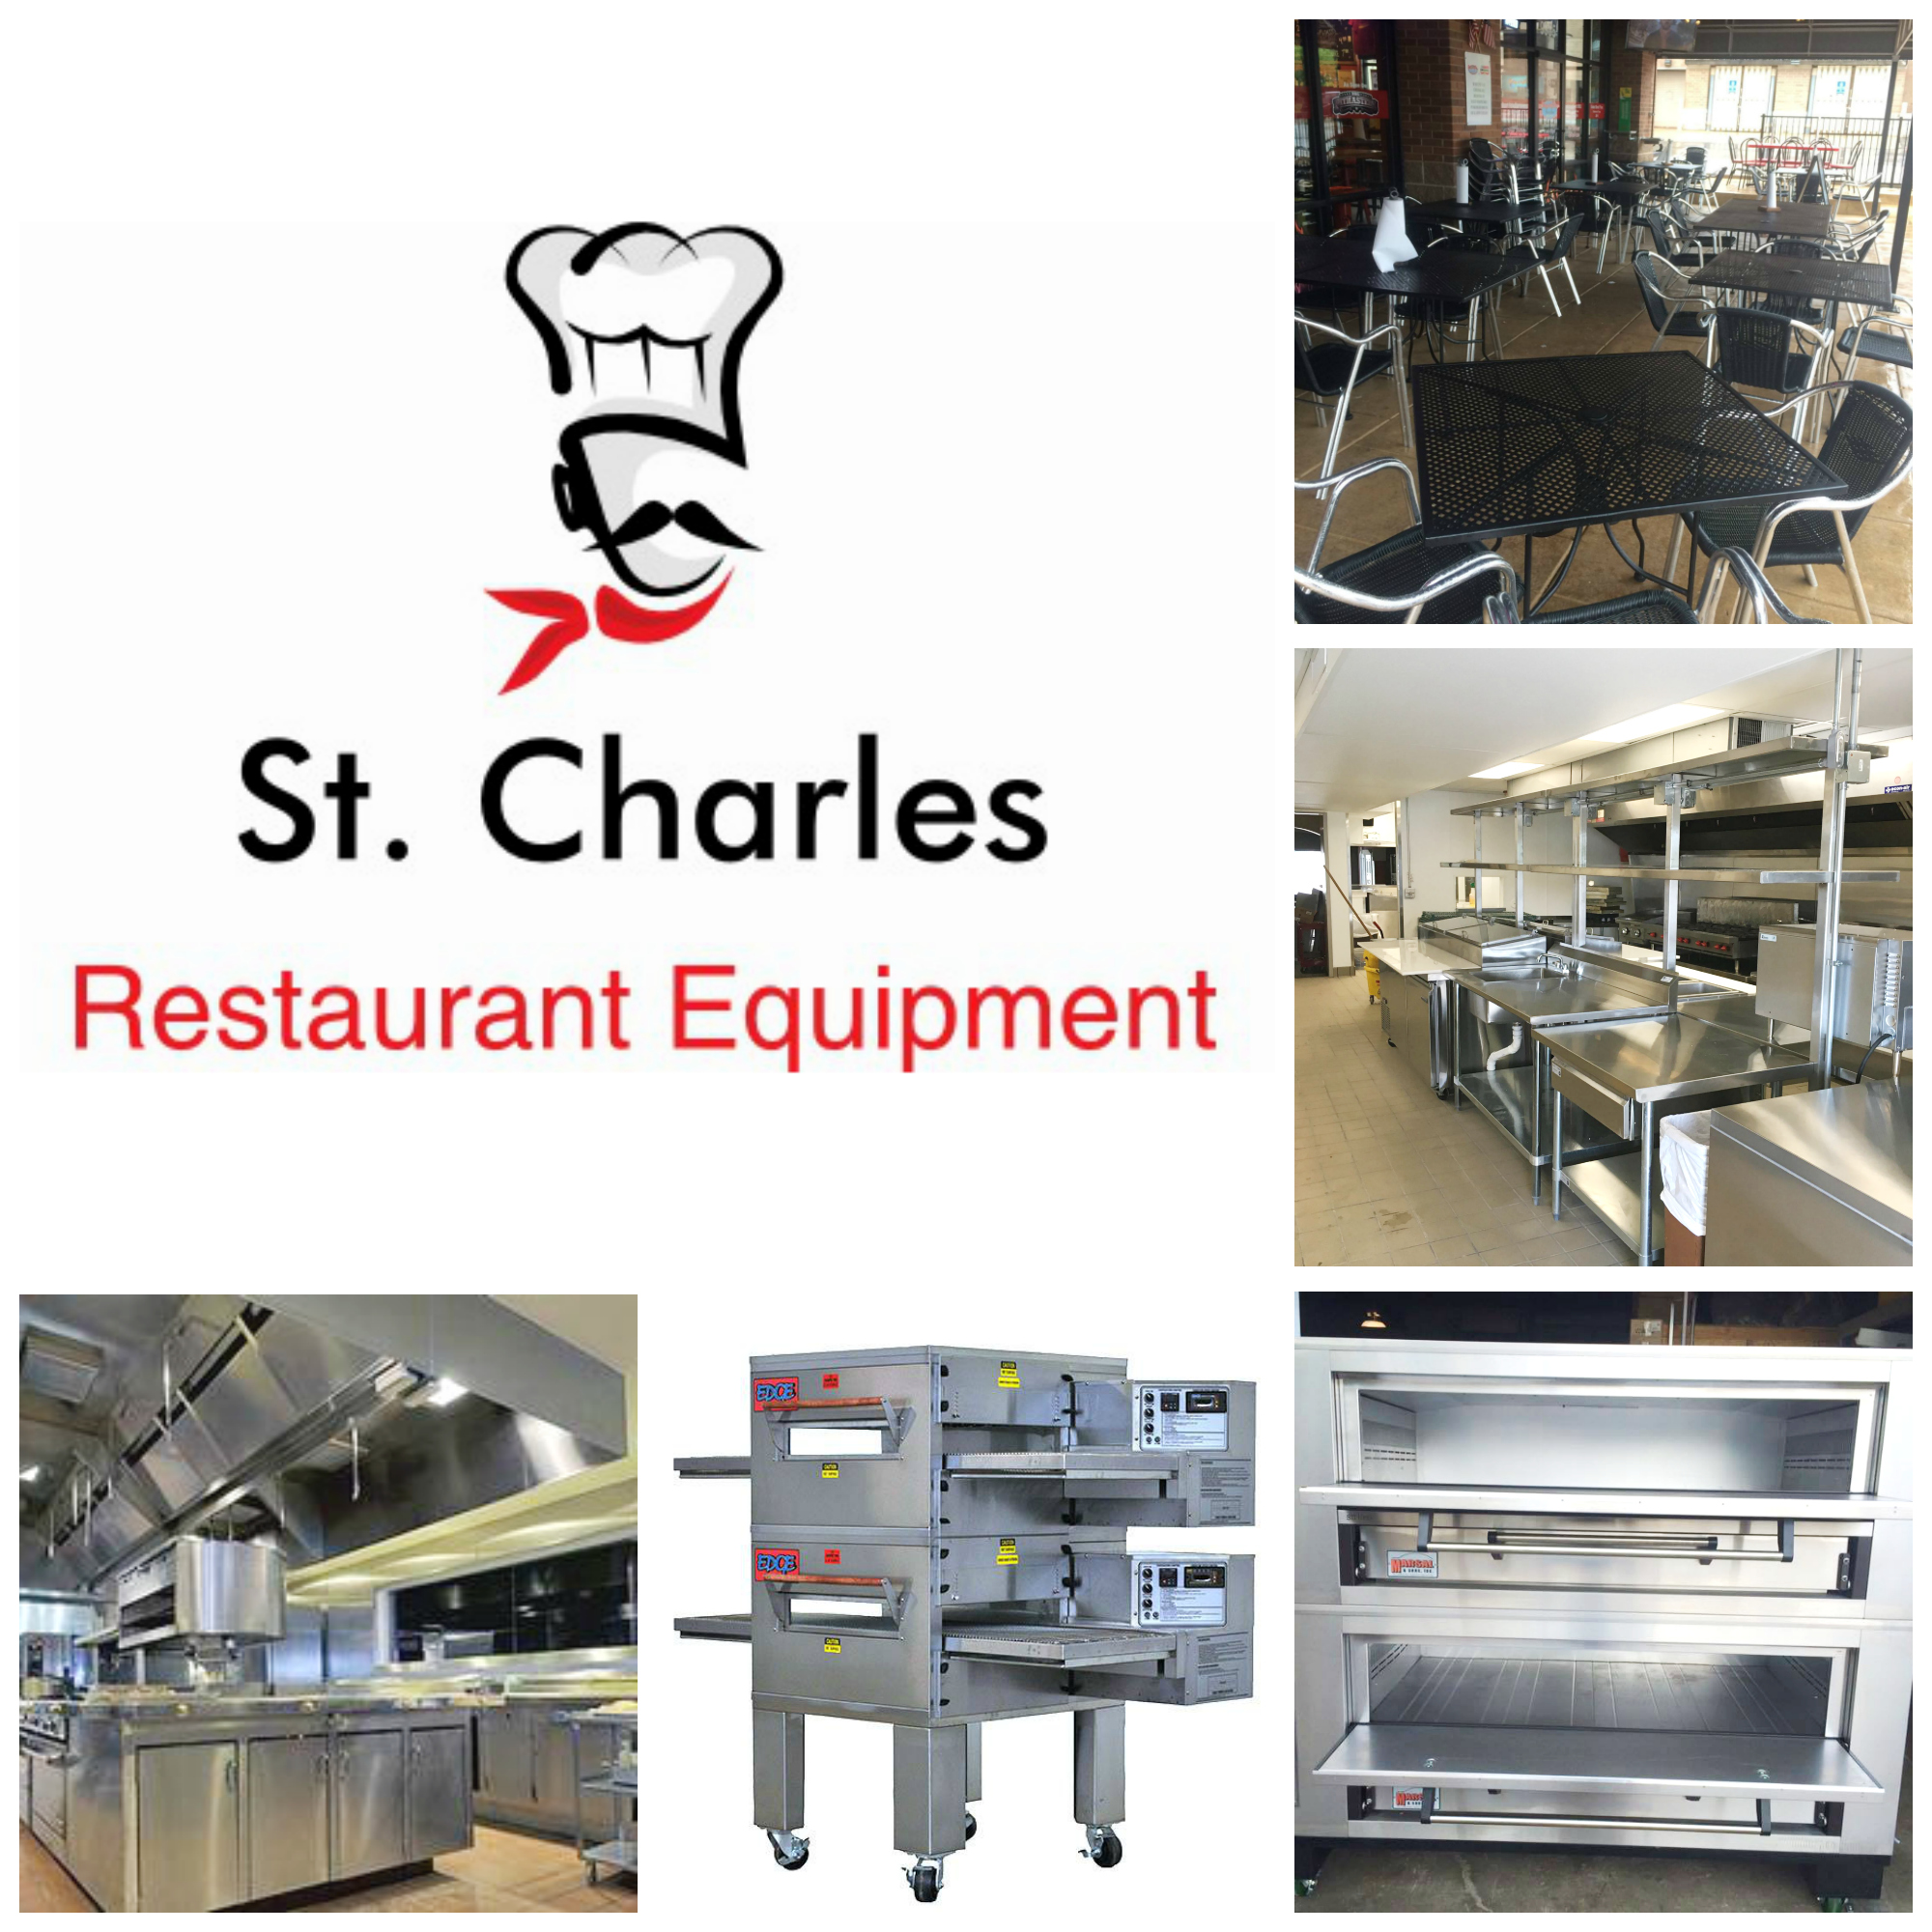 St Charles Restaurant Equipment 4024 N Service Rd., Saint Peters, MO ...